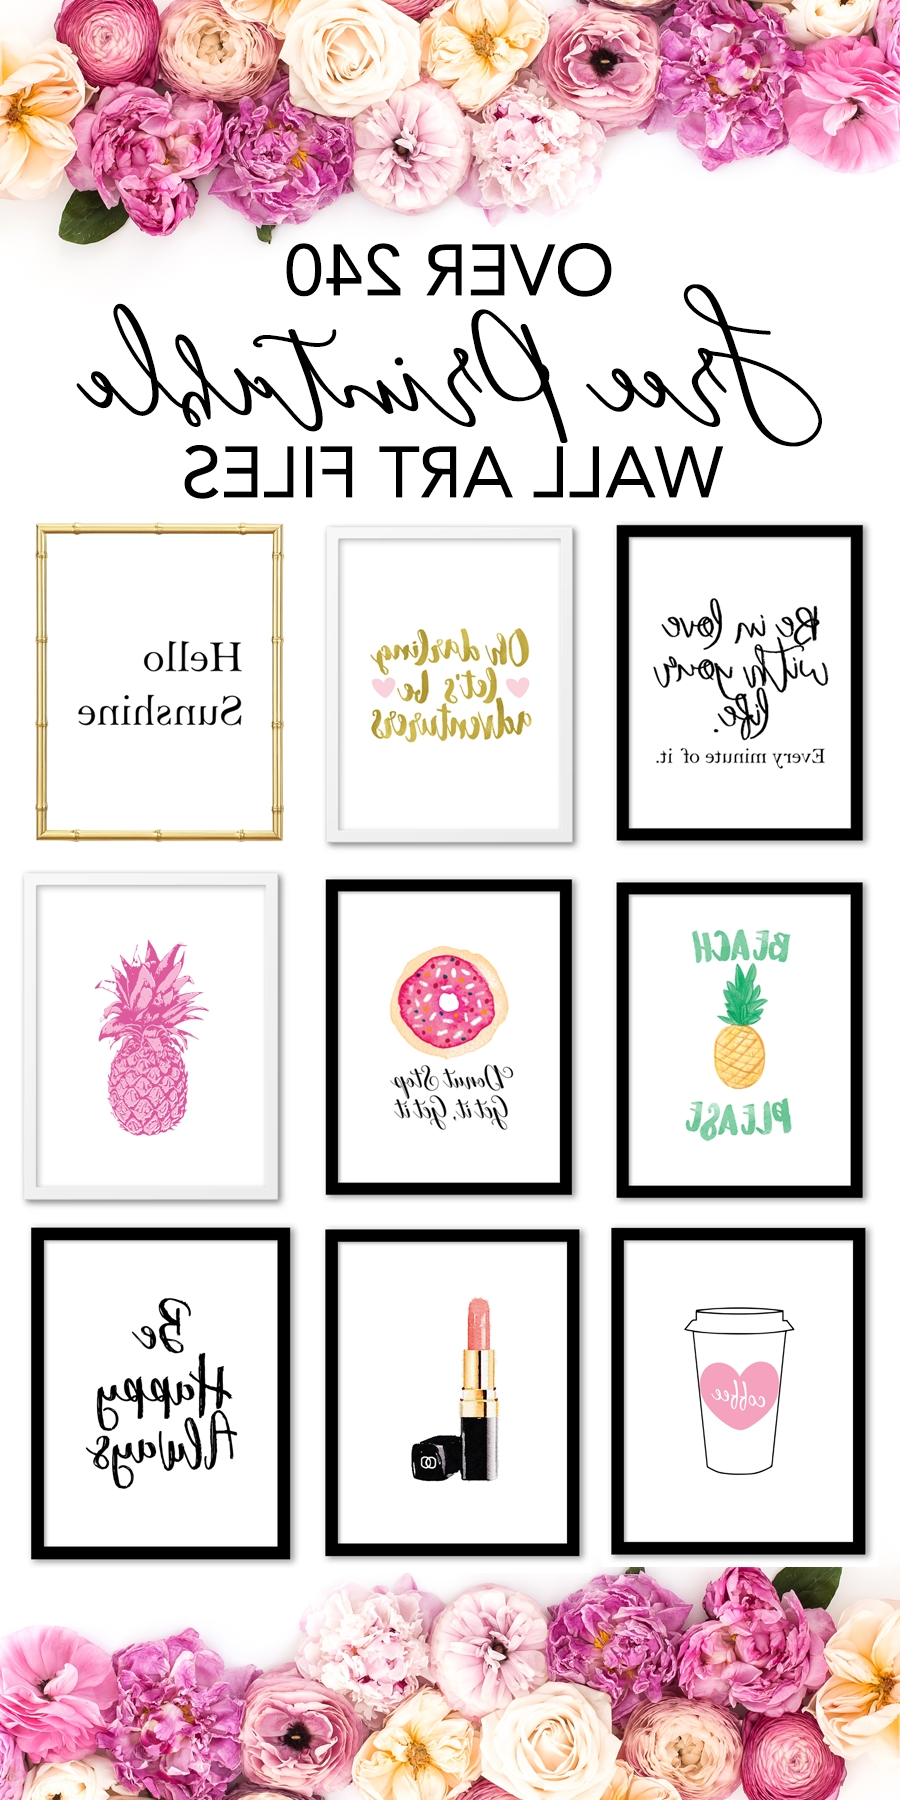 Printable Wall Art – Print Wall Decor And Poster Prints For Your Home In Best And Newest Printable Wall Art (View 8 of 15)